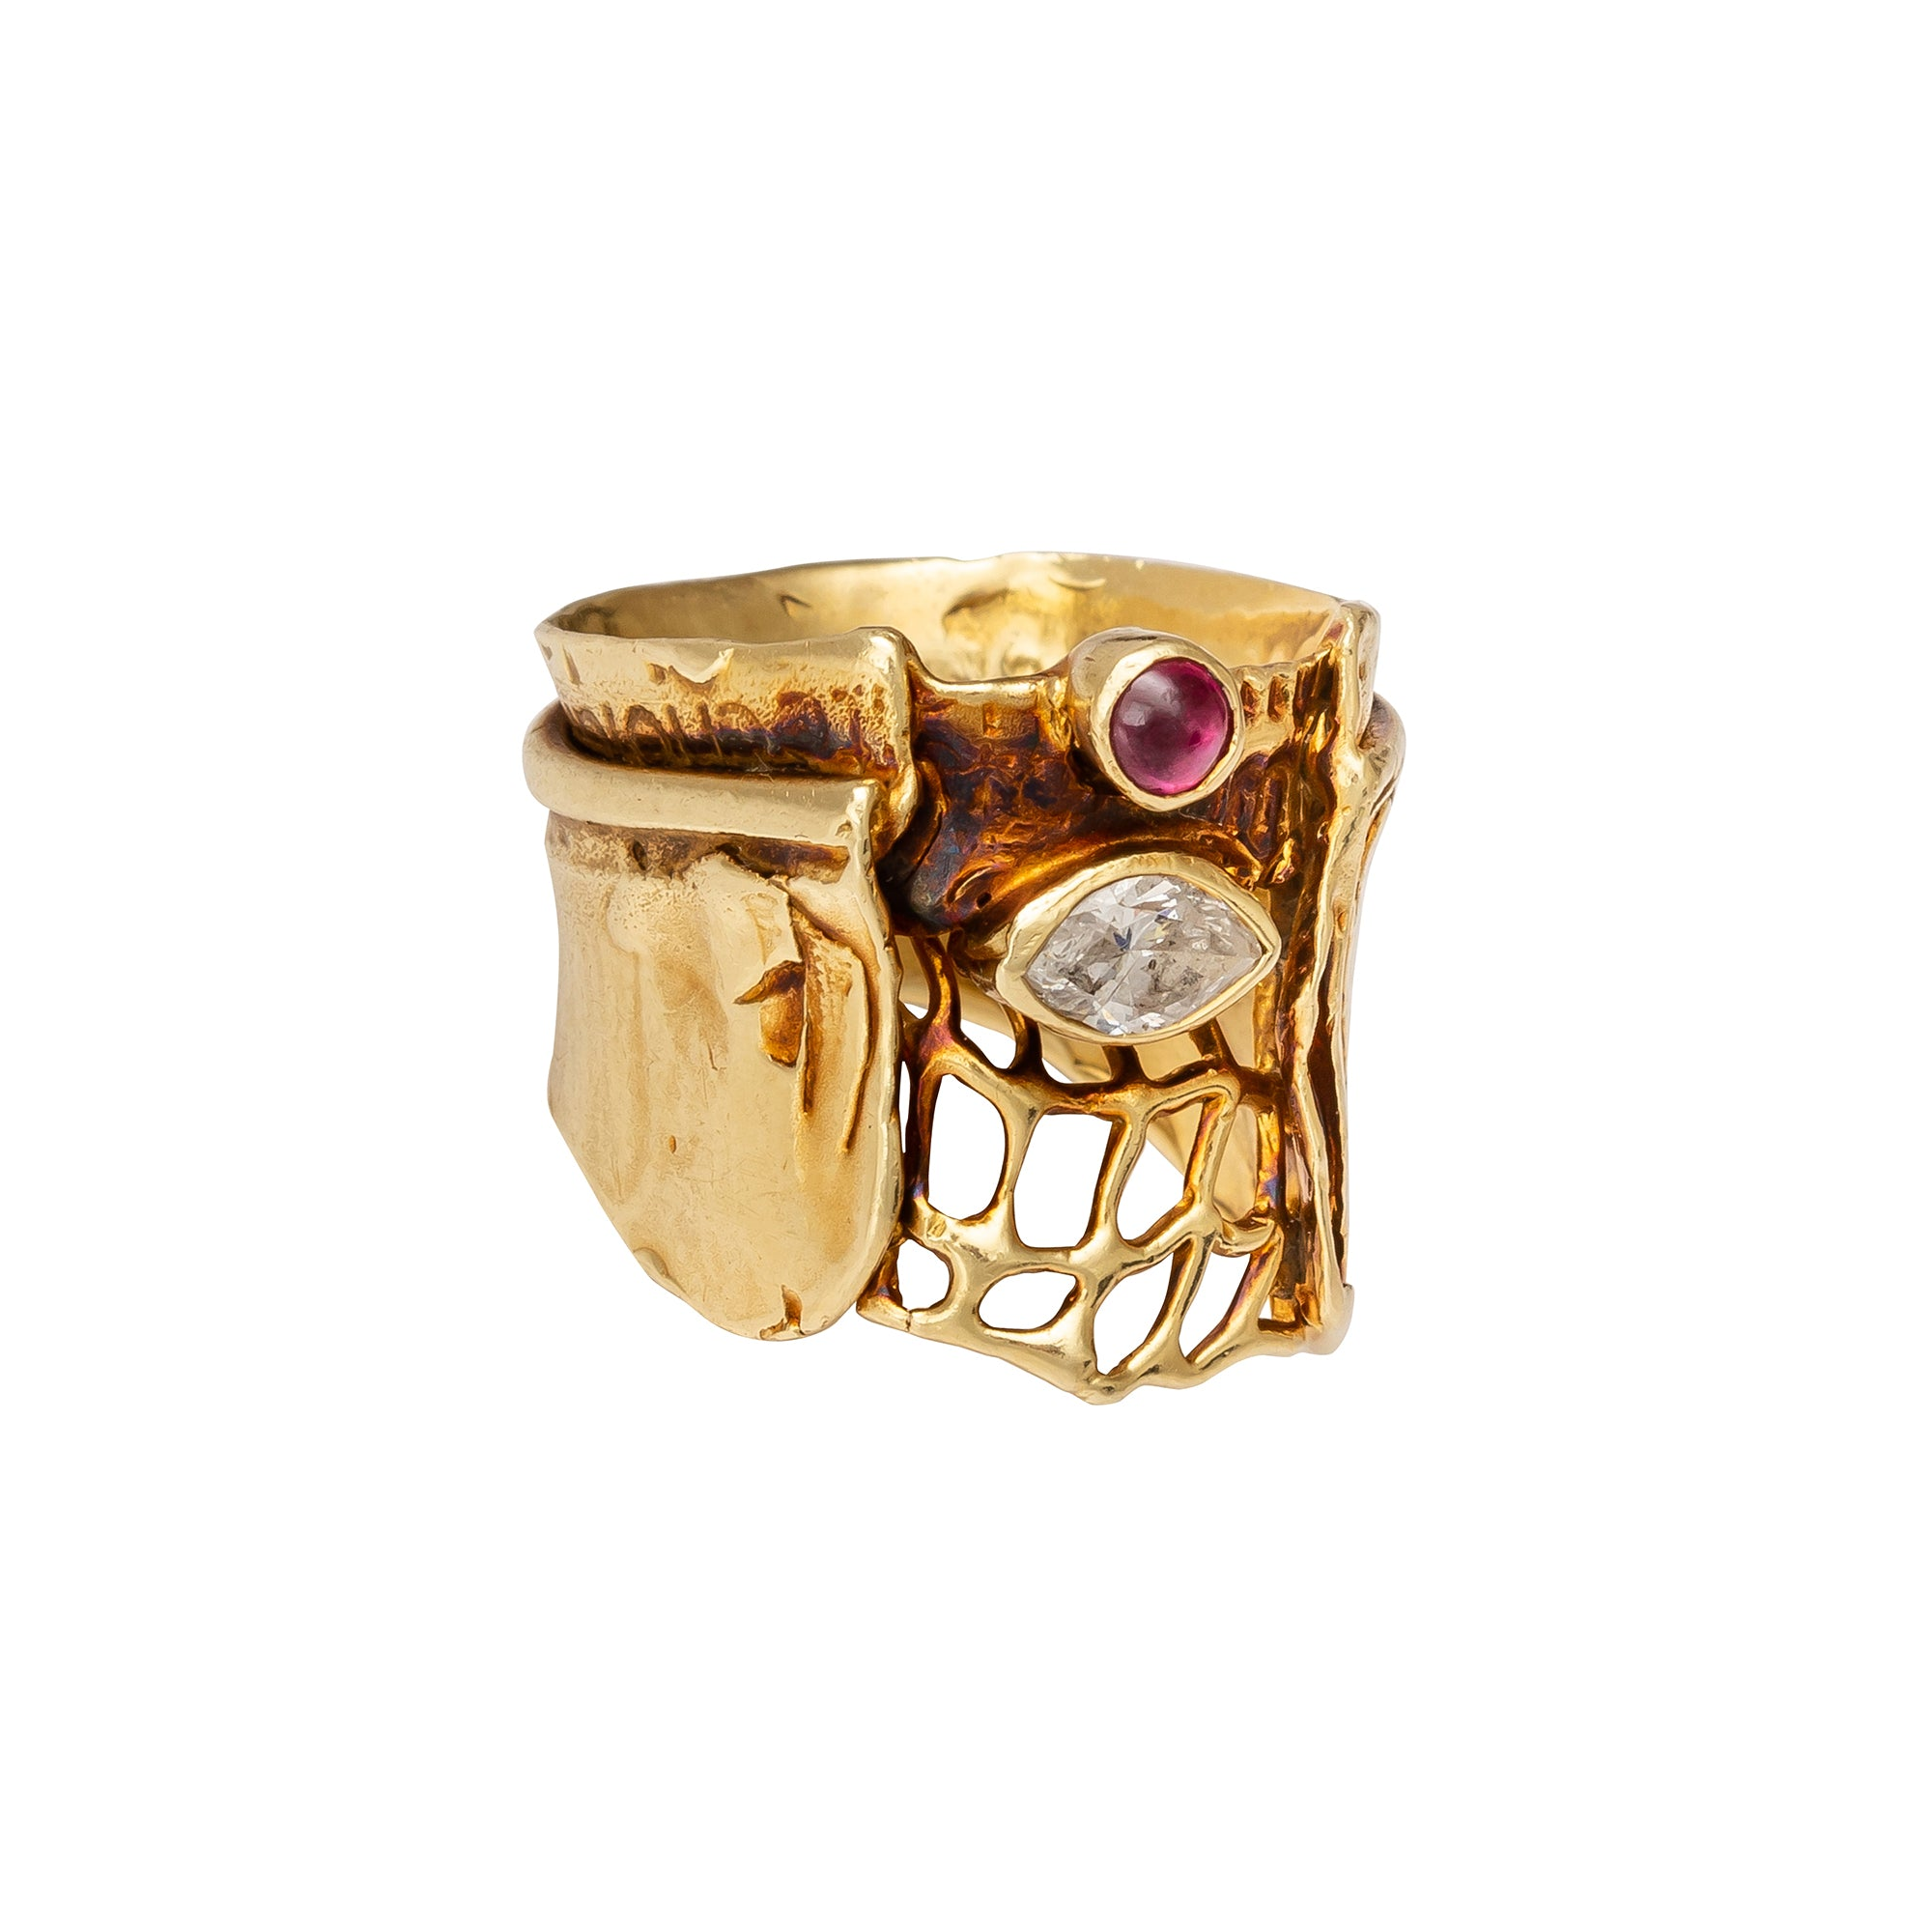 Antique & Vintage Jewelry Vintage Ruby Corset Ring - Rings - Broken English Jewelry